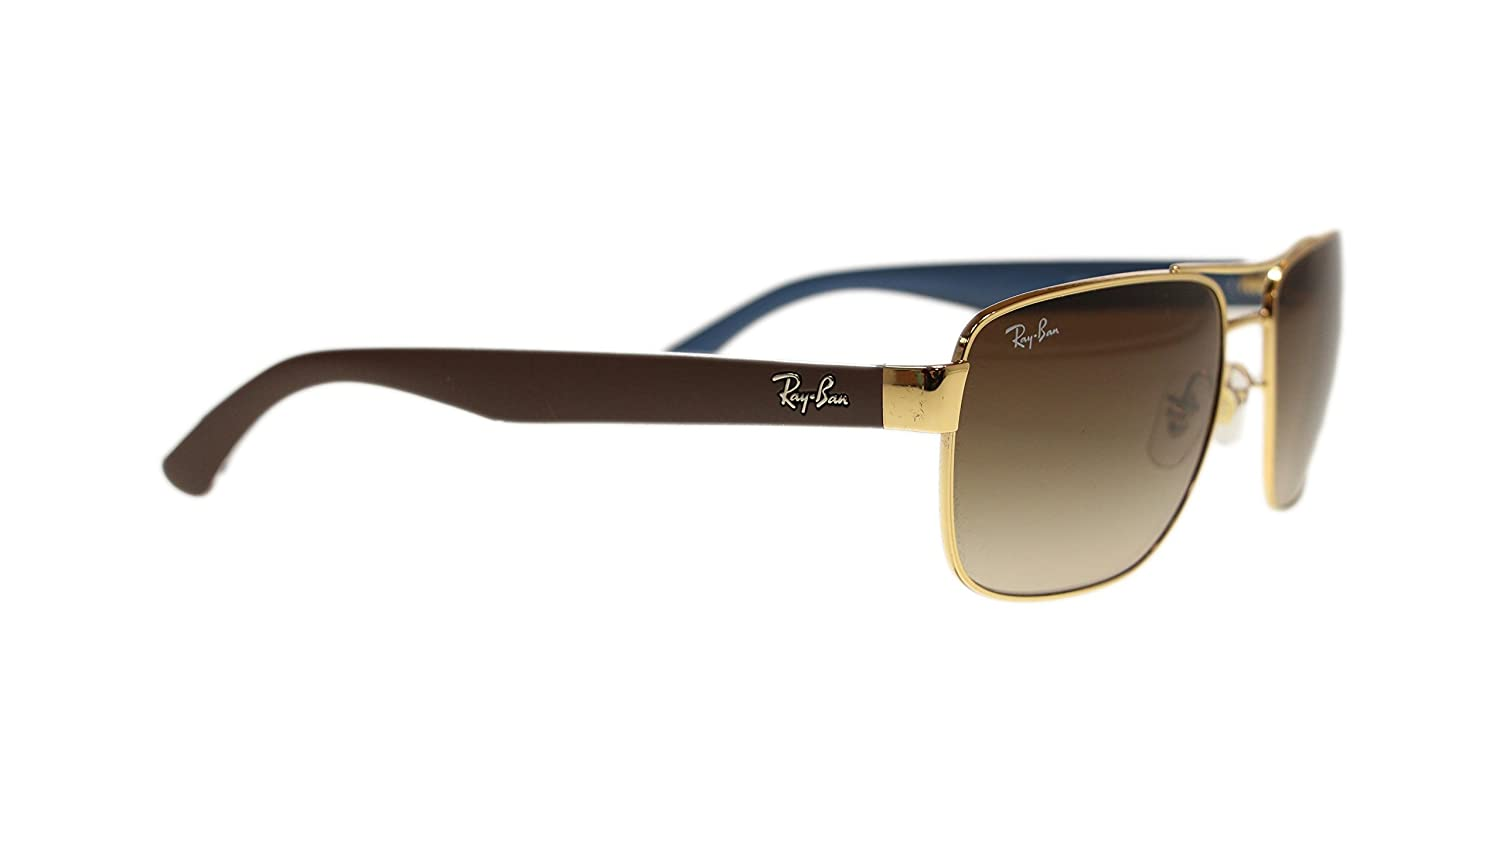 0f7db31a6bd Amazon.com  Ray Ban Mens Sunglasses RB3530 001 13 Gold Brown Gradient Lens  58mm Authentic  Clothing